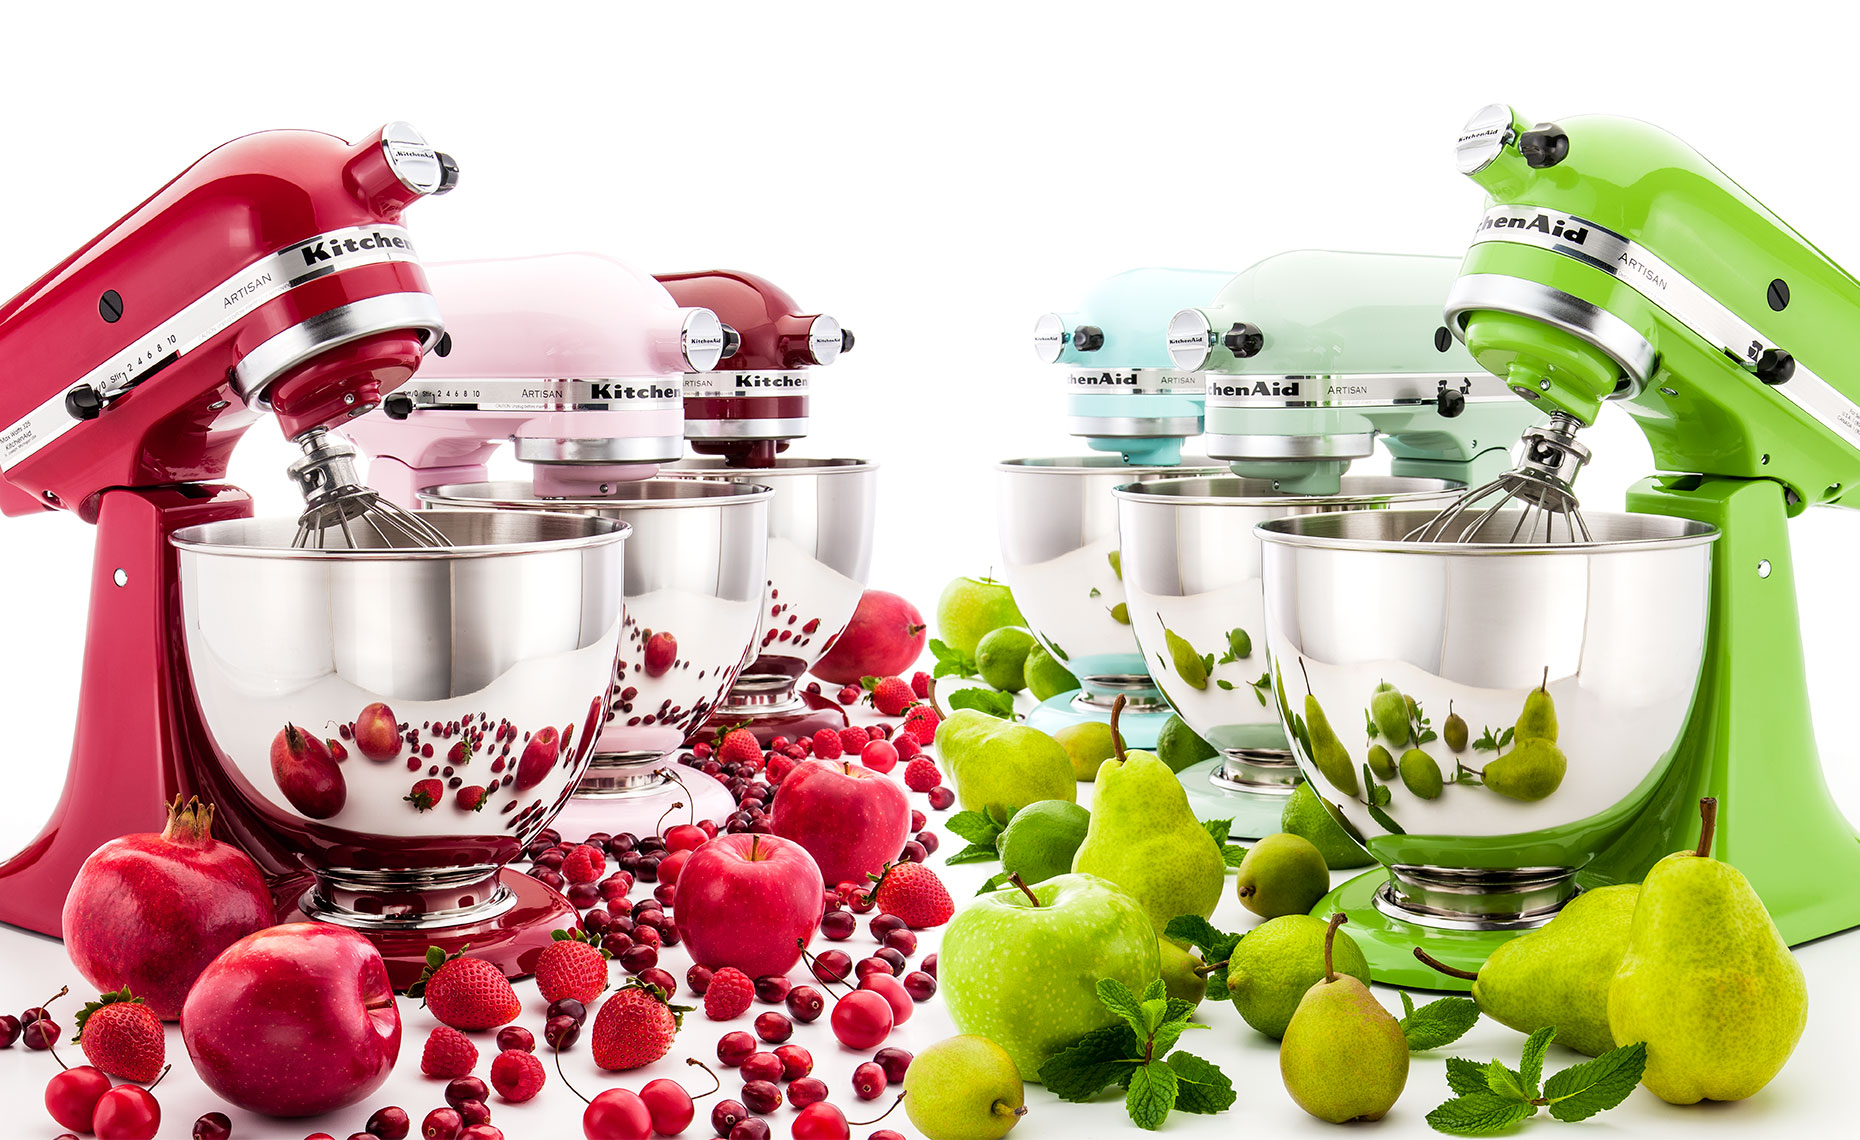 Kitchenmaid blender lineup with tons of fruit